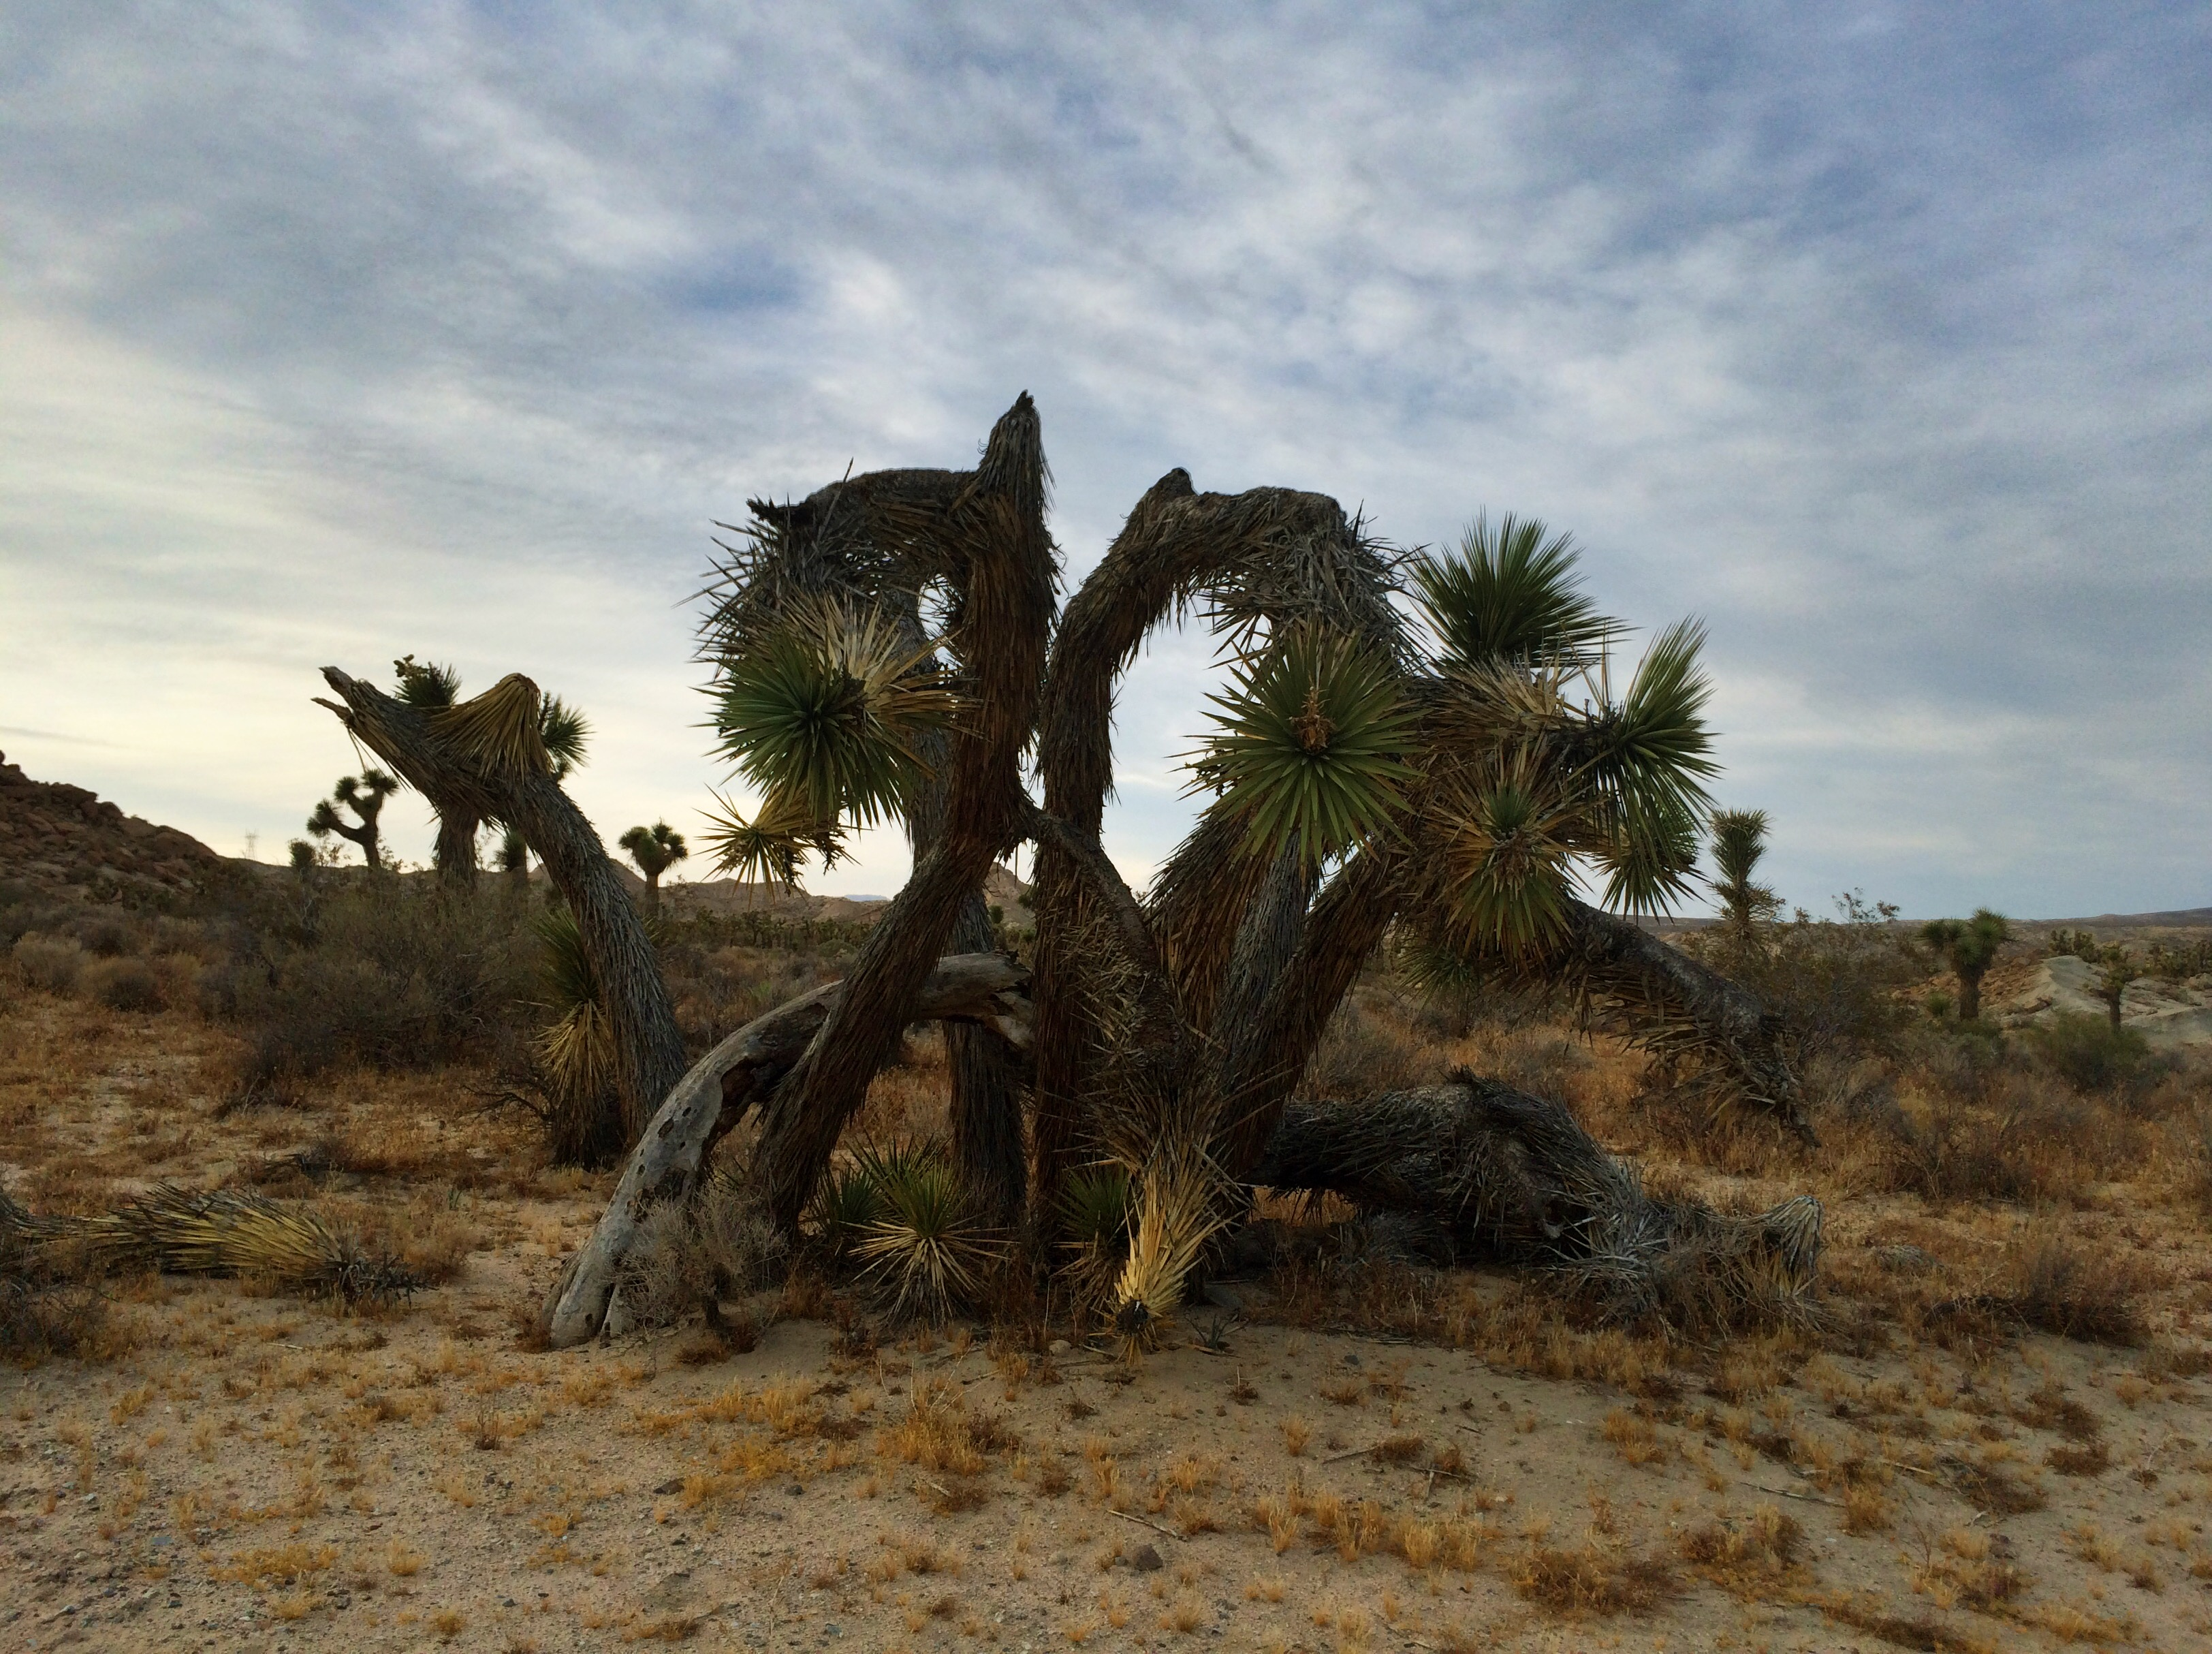 A rather gnarly Joshua tree growing in the Mojave Desert. Photo by Clay Duda.